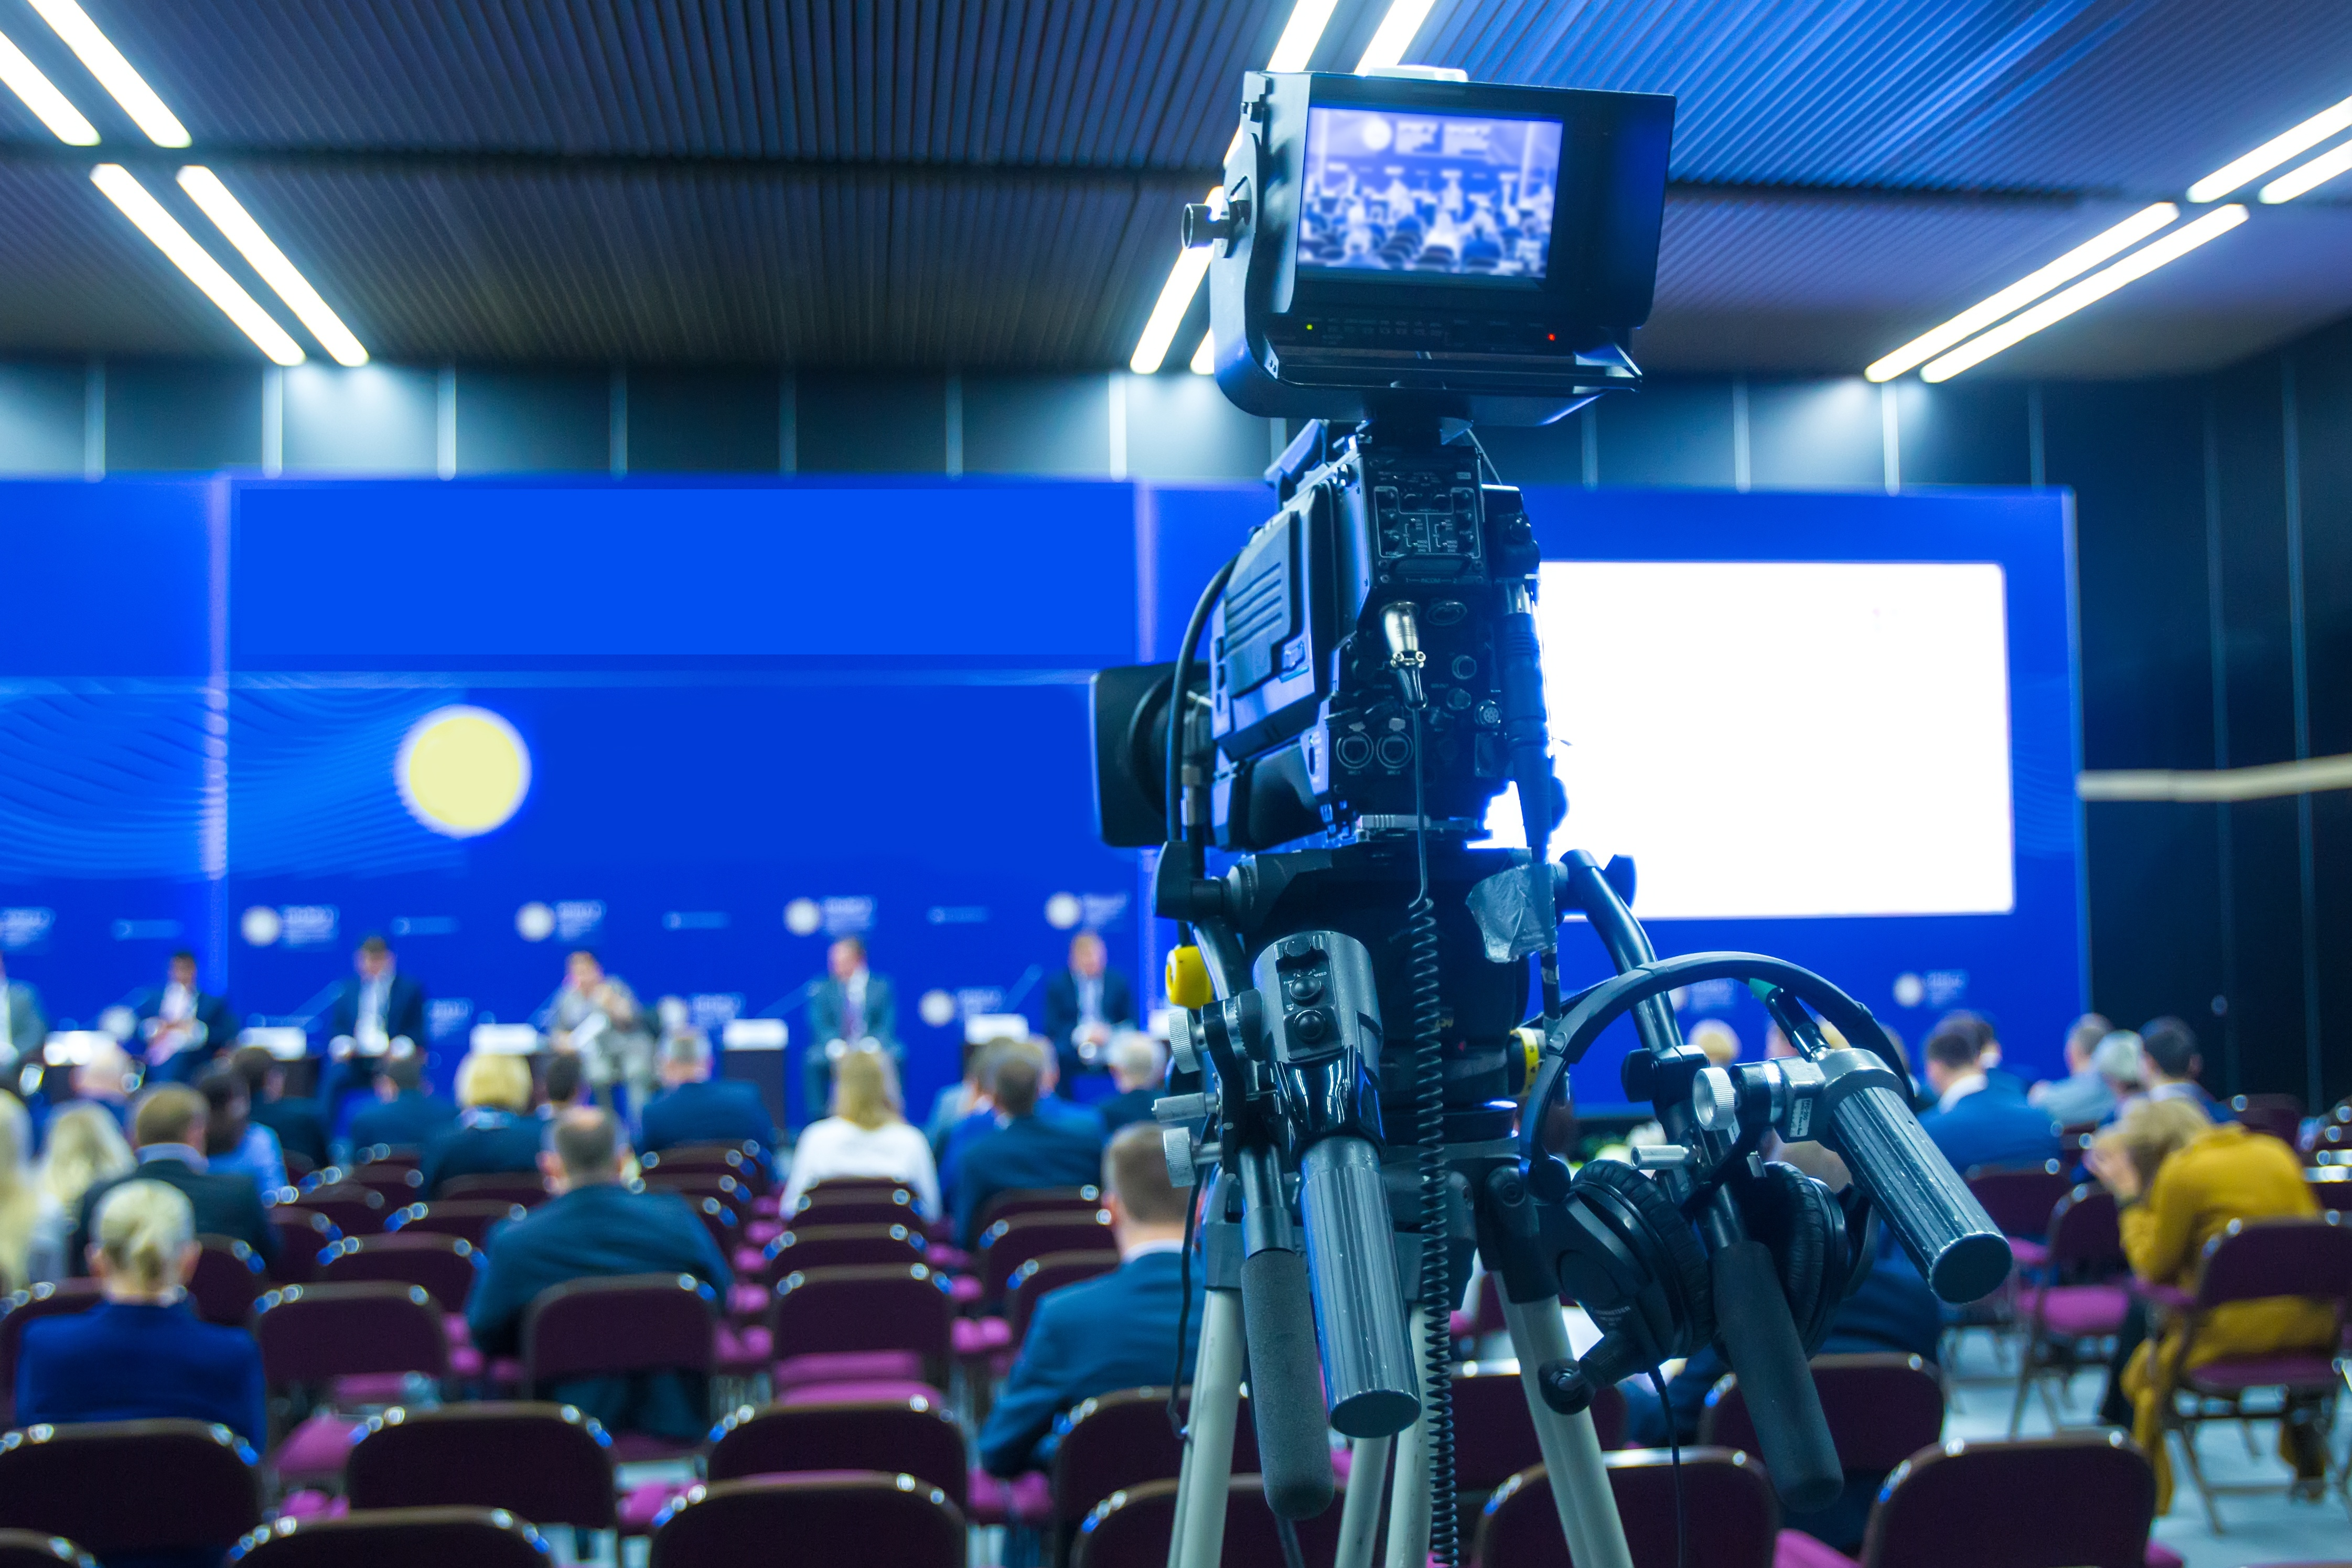 Meeting and Conference Broadcast